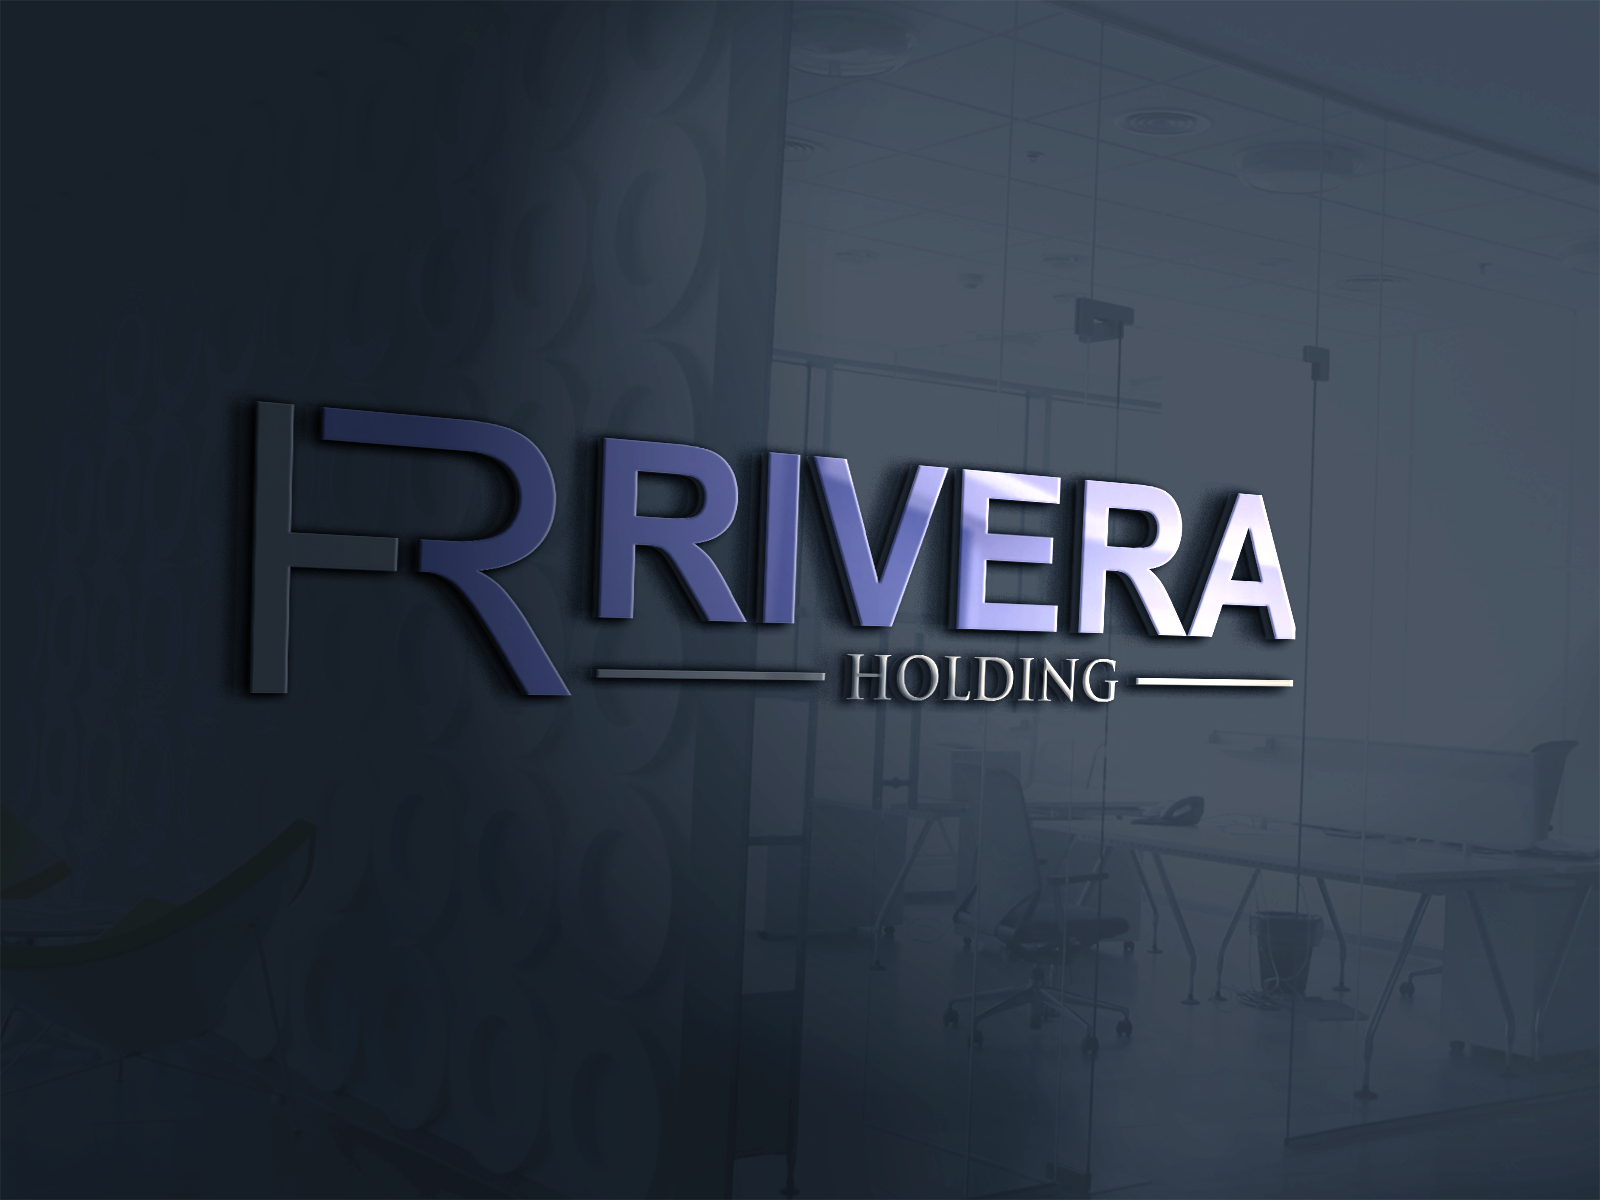 Logo Design by Shahnawaz Ahmed - Entry No. 8 in the Logo Design Contest RIVERA HOLDING Logo Design.